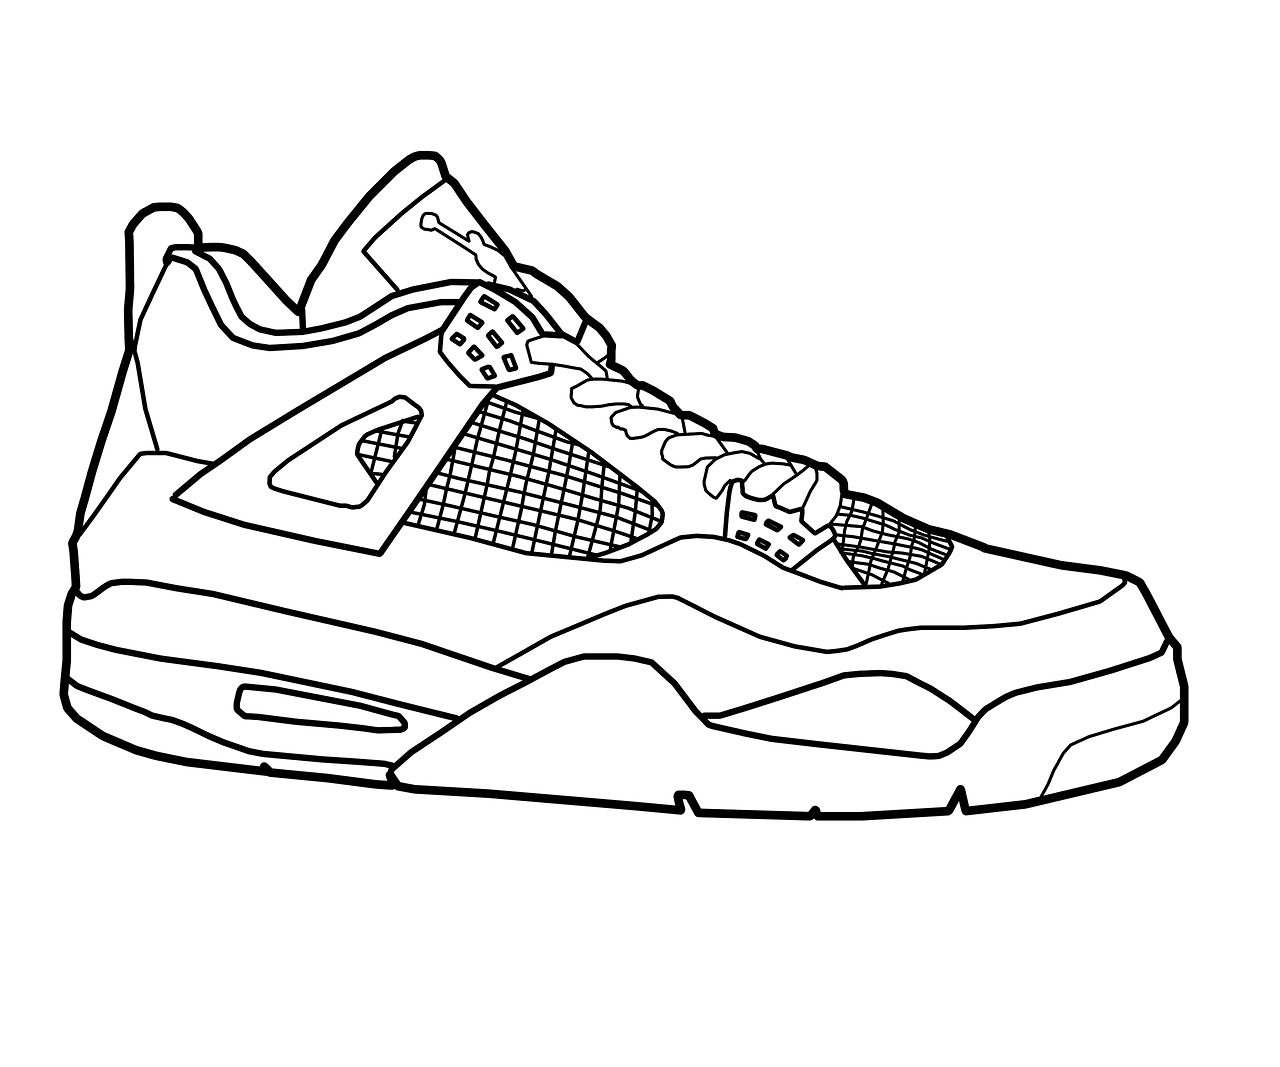 how to draw a simple shoe how to draw shoes male shoes and high heels craftknights a how simple shoe draw to